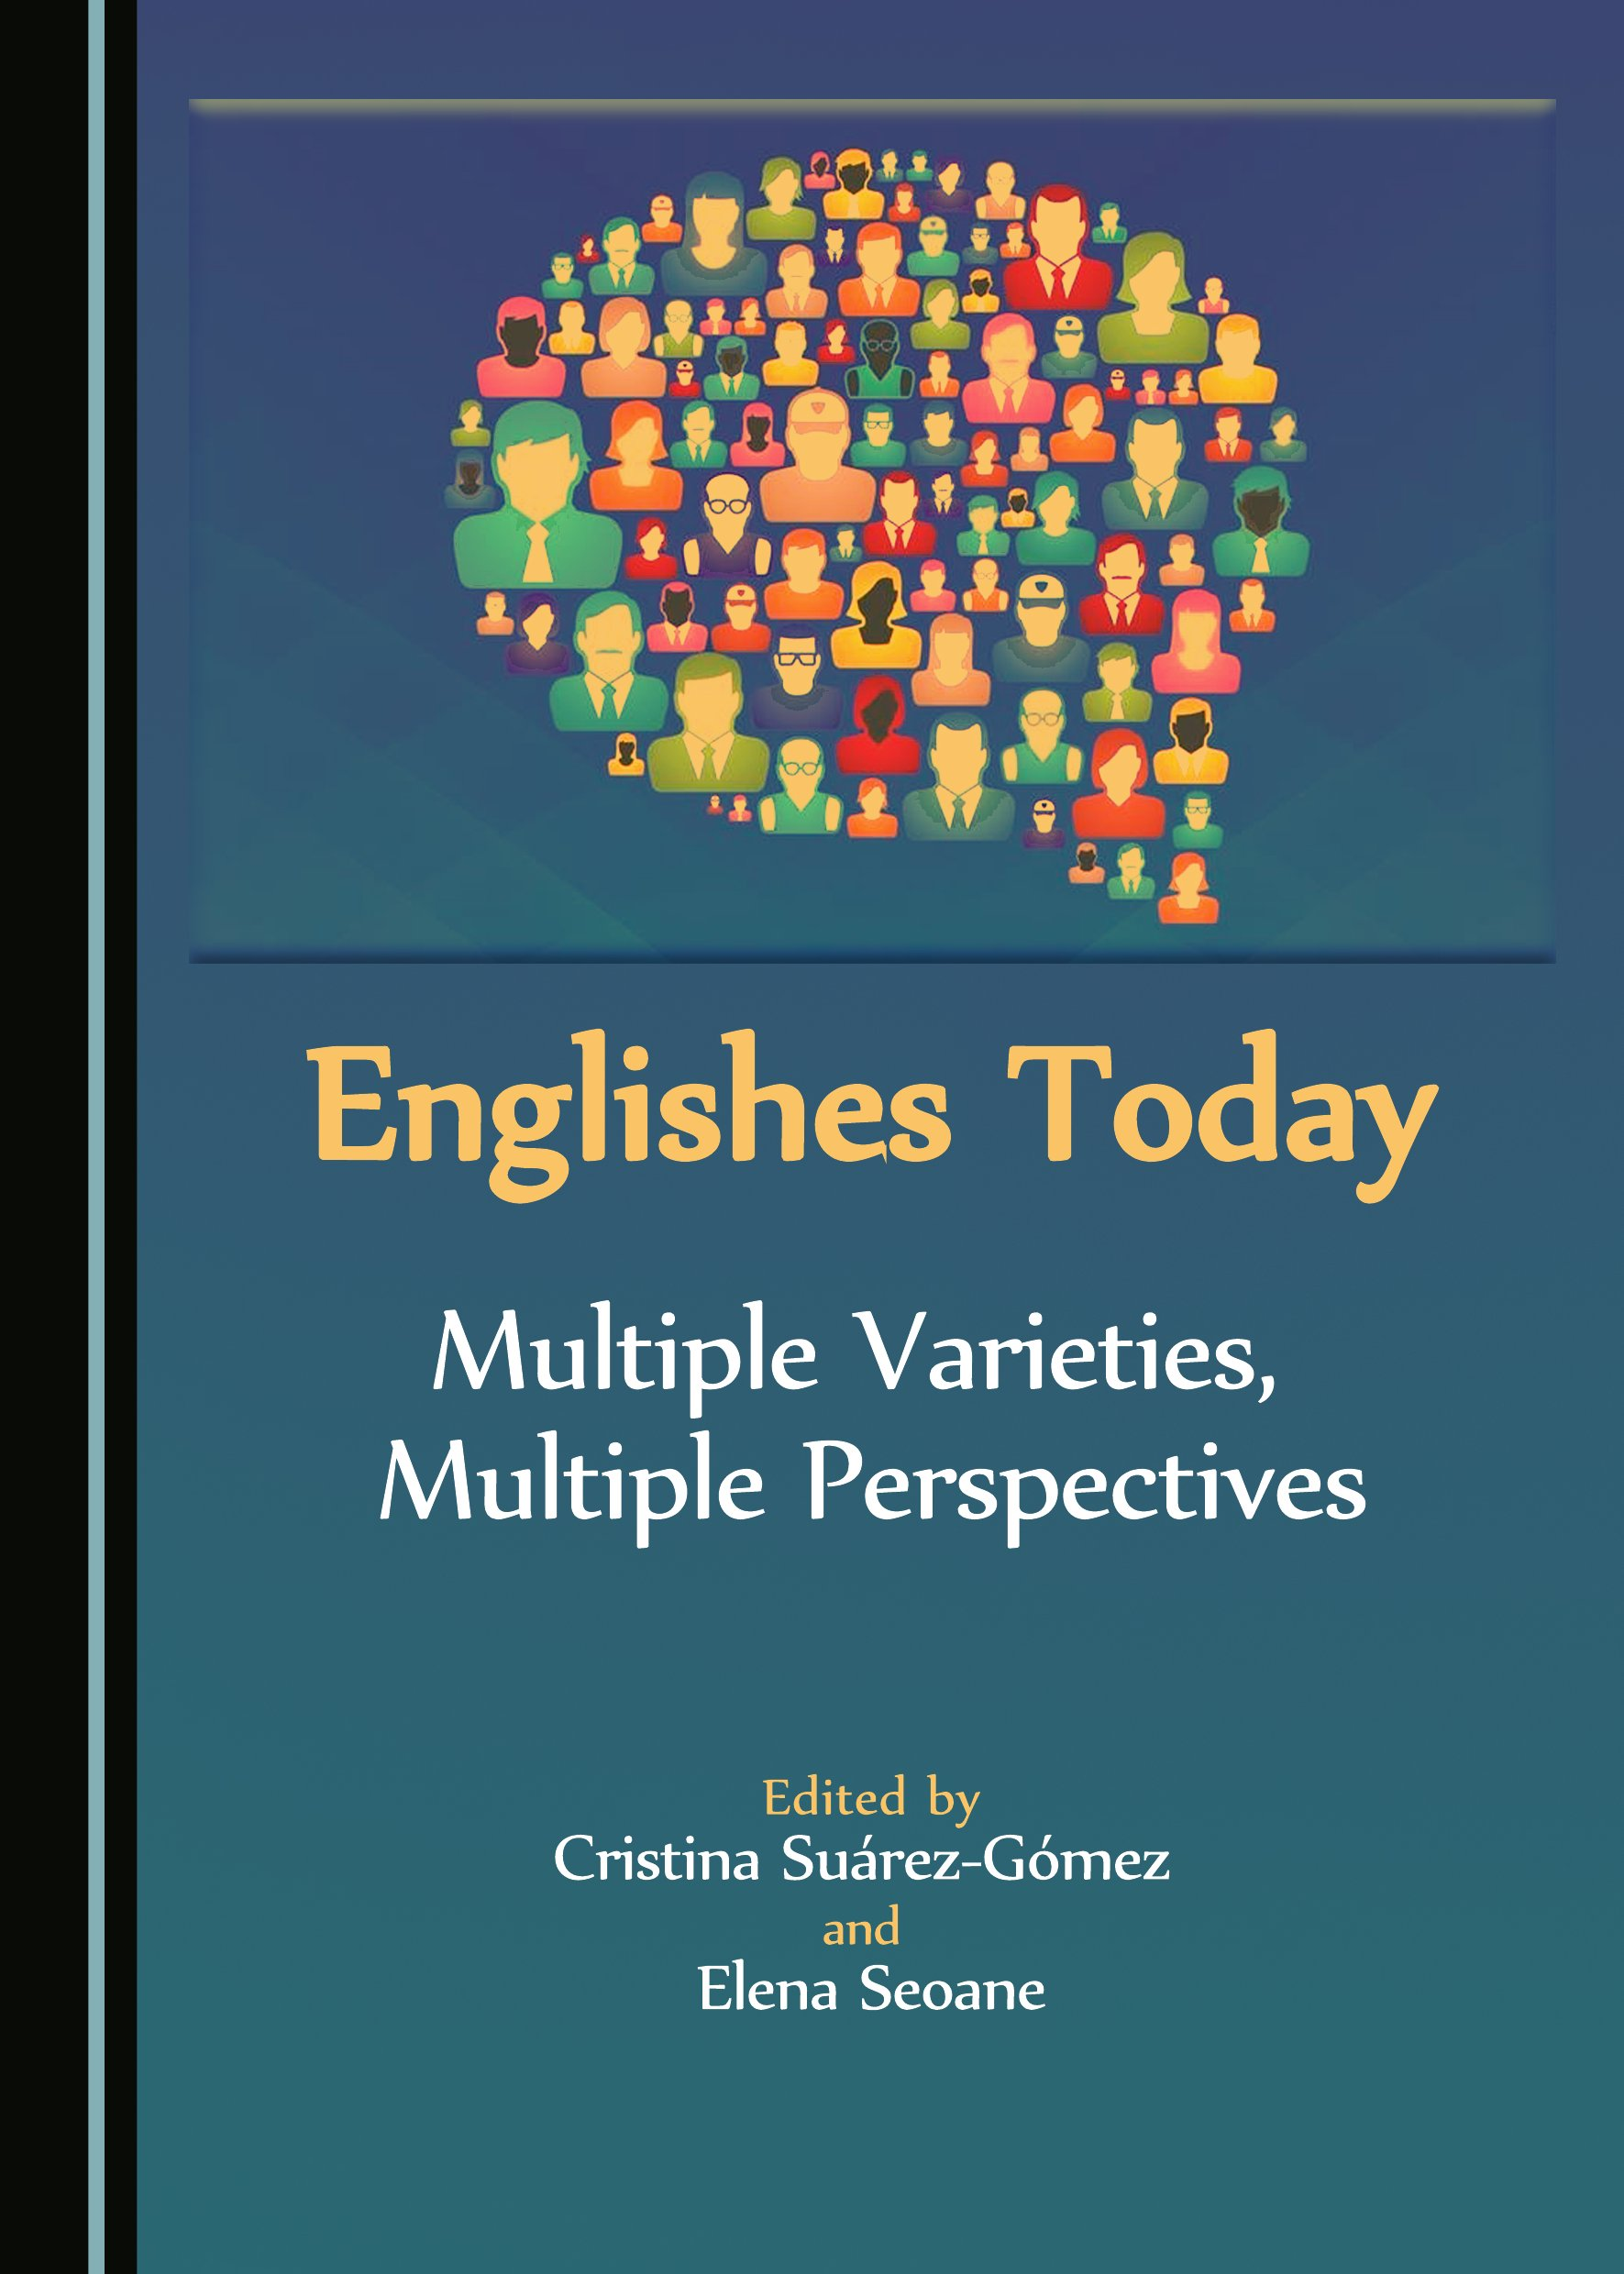 Englishes Today: Multiple Varieties, Multiple Perspectives